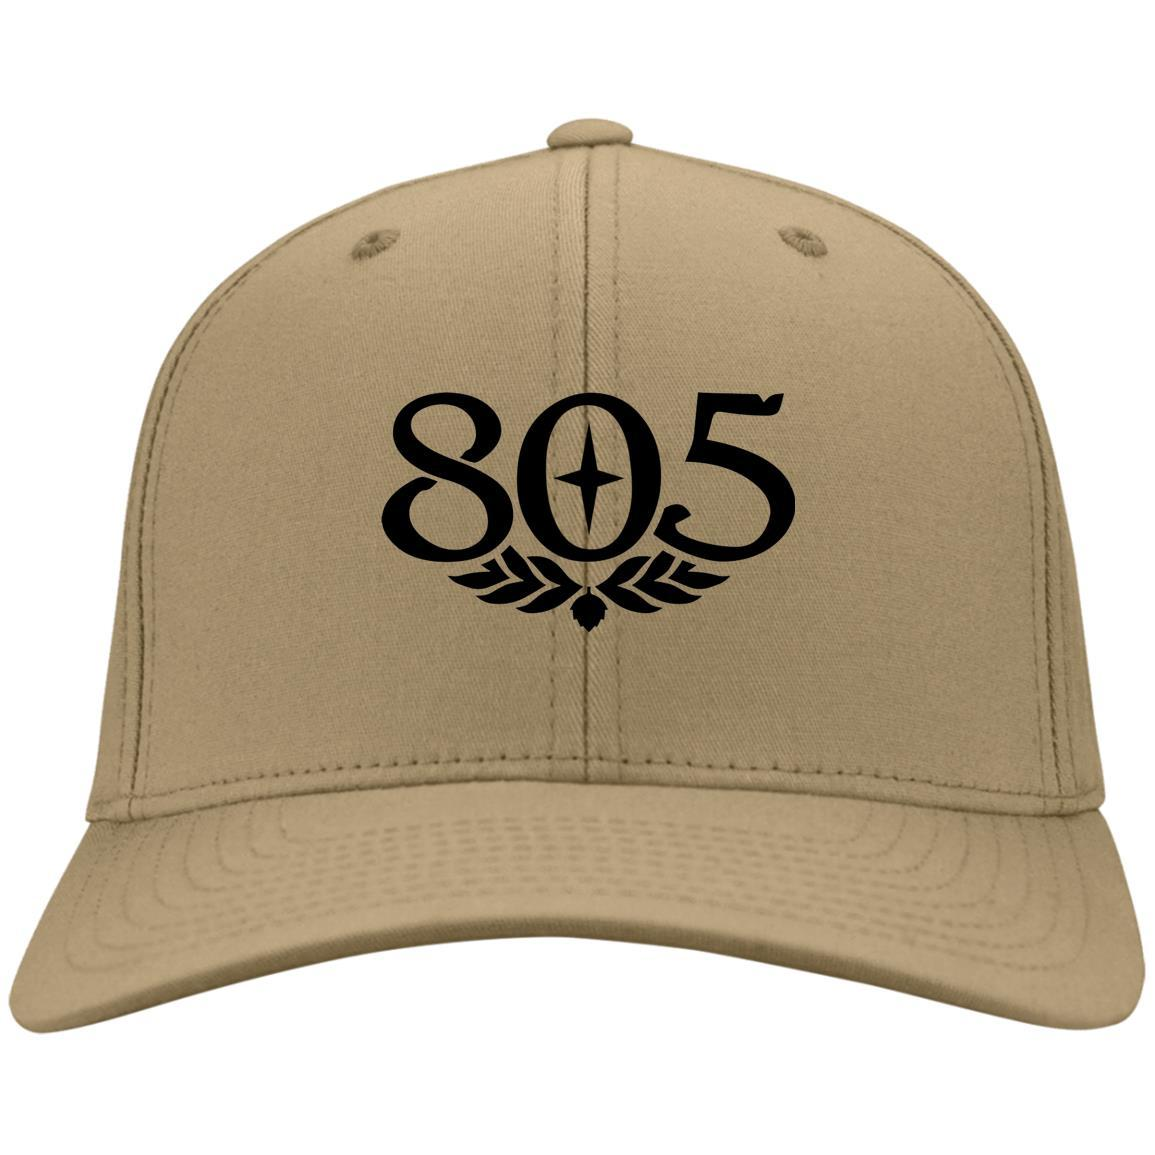 805 Beer Black - Port & Co. Twill Cap Vegas Gold